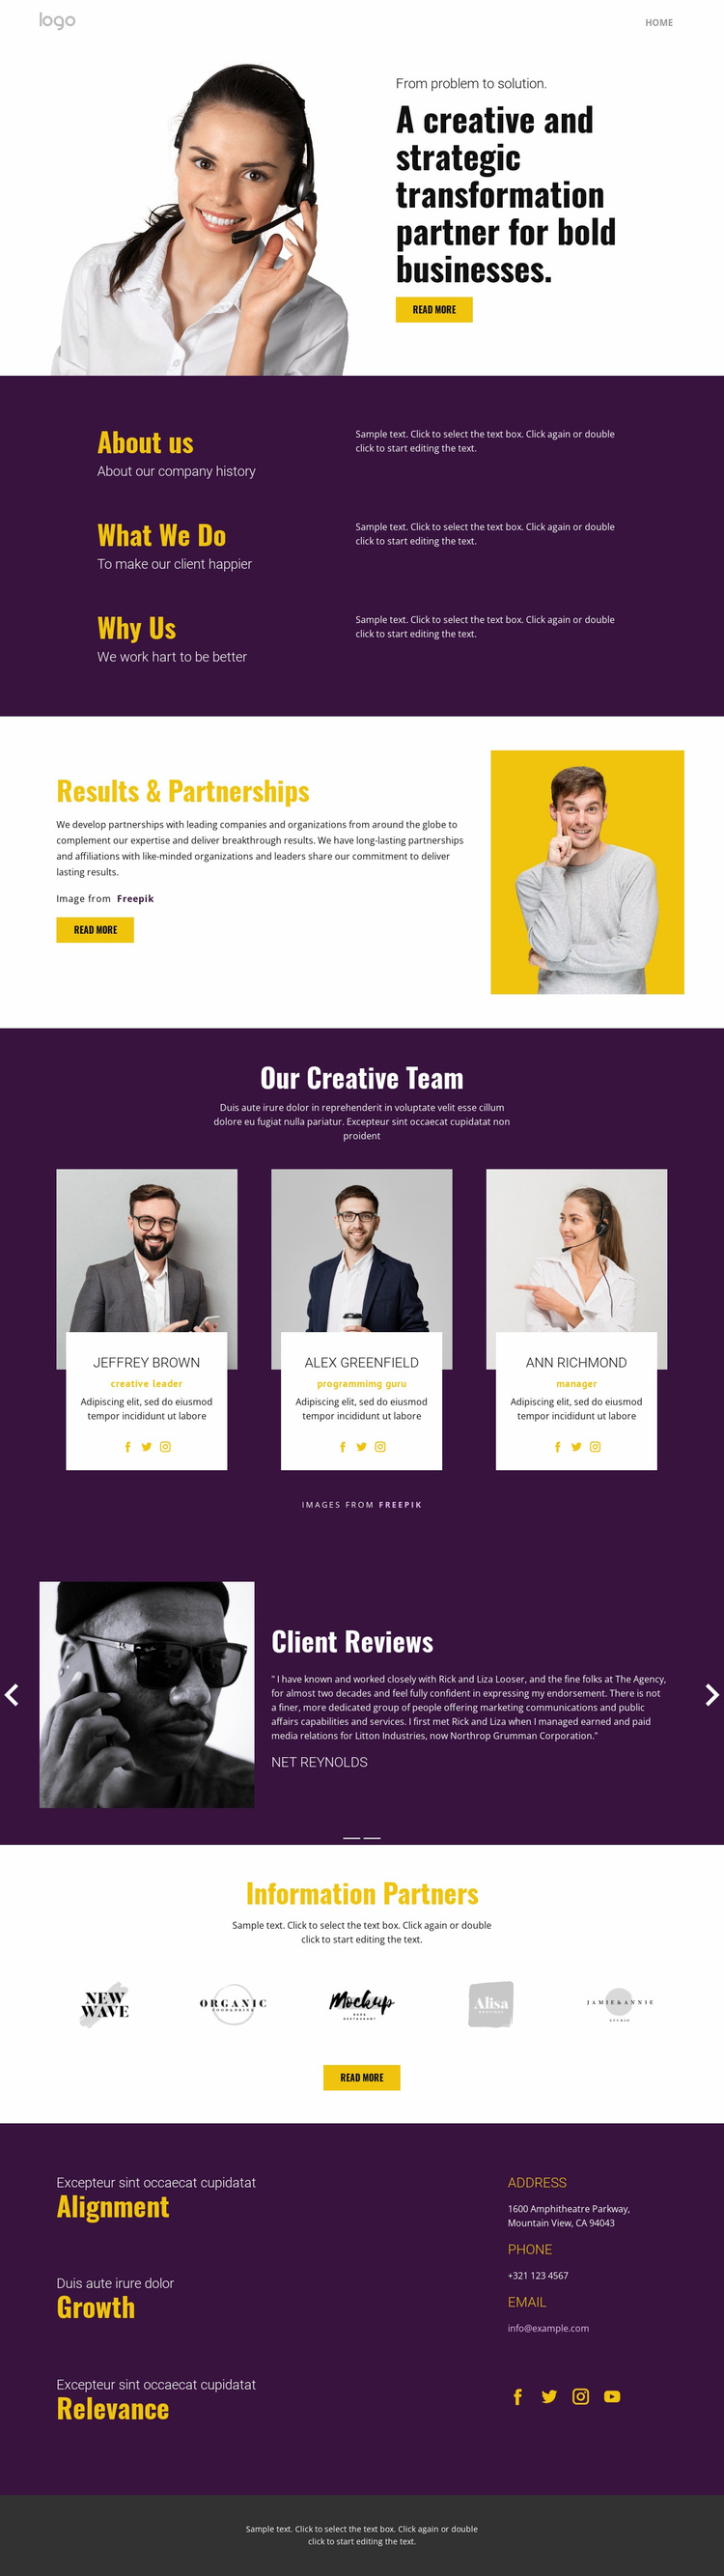 Creative strategy in business Website Design